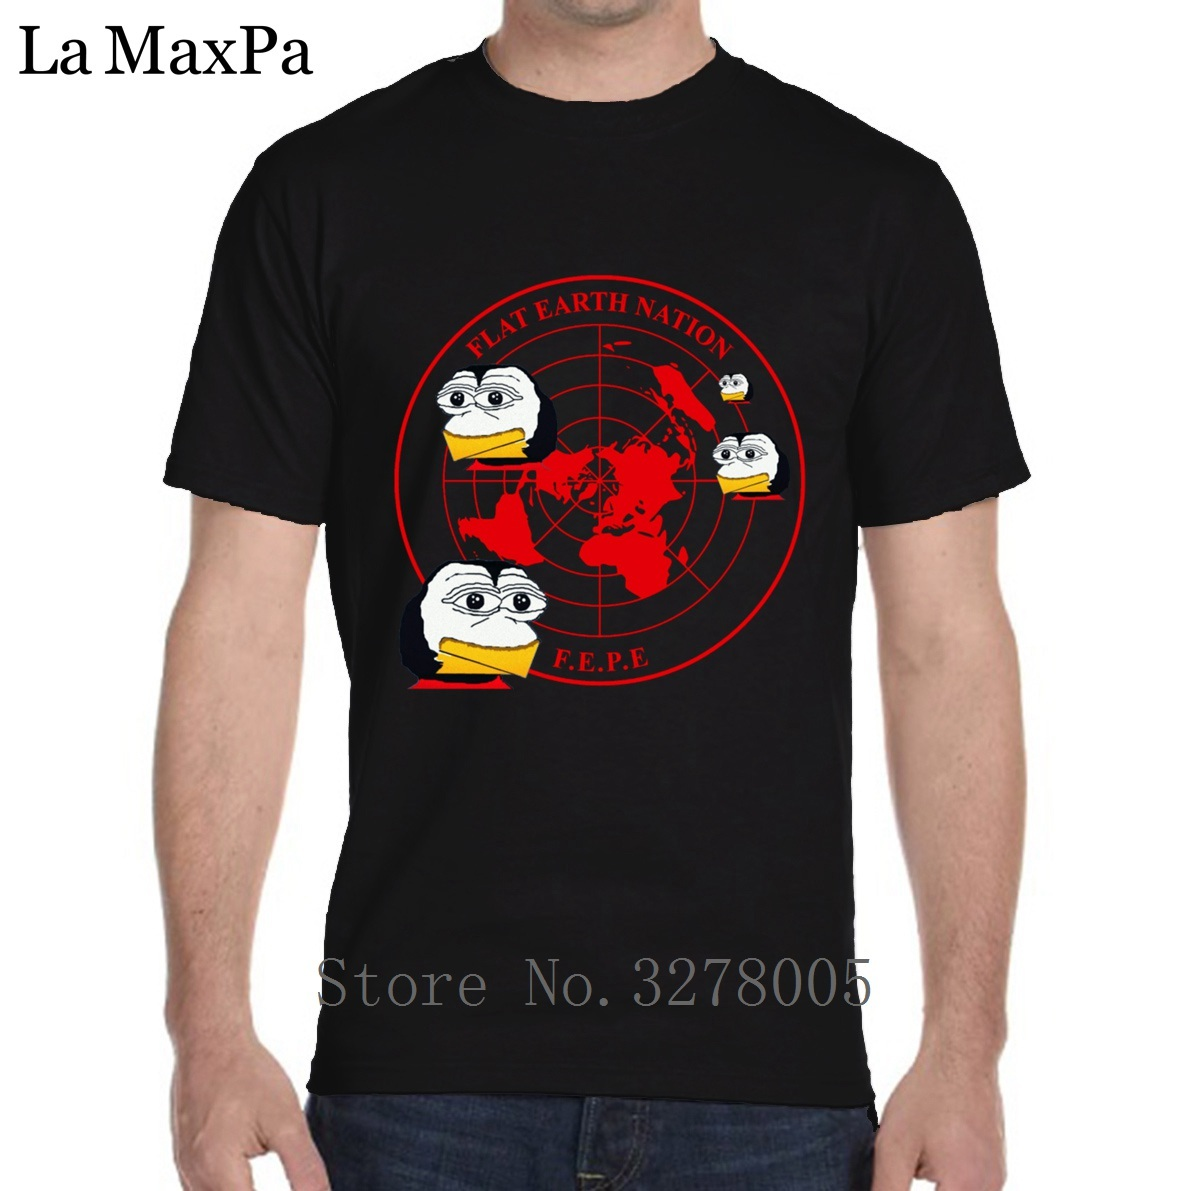 Printed T-Shirt Classic Flat Earth People Everywhere Watching Red T Shirt For Men Kawaii Tee Shirt Personnalise Summer Big Sizes